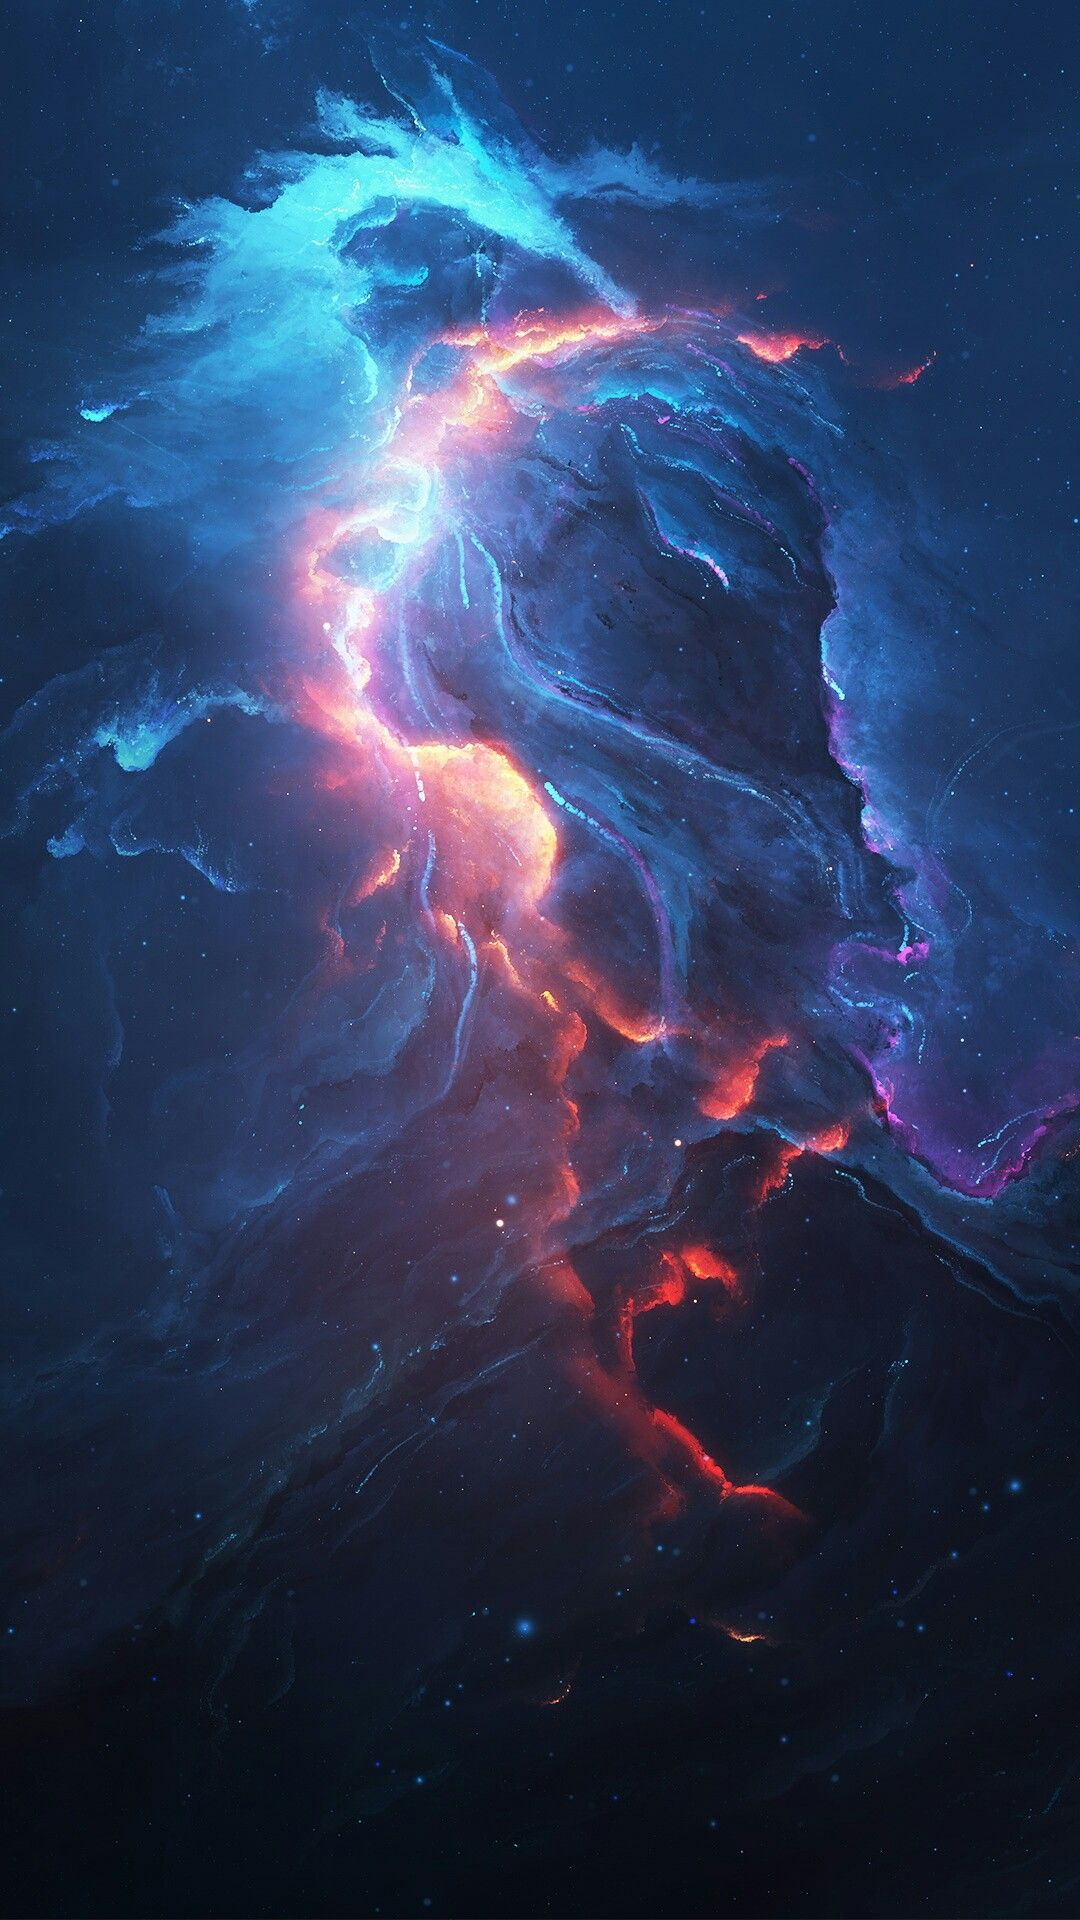 Dragon My Worlds Wallpaper Space Planets Wallpaper Nebula Wallpaper